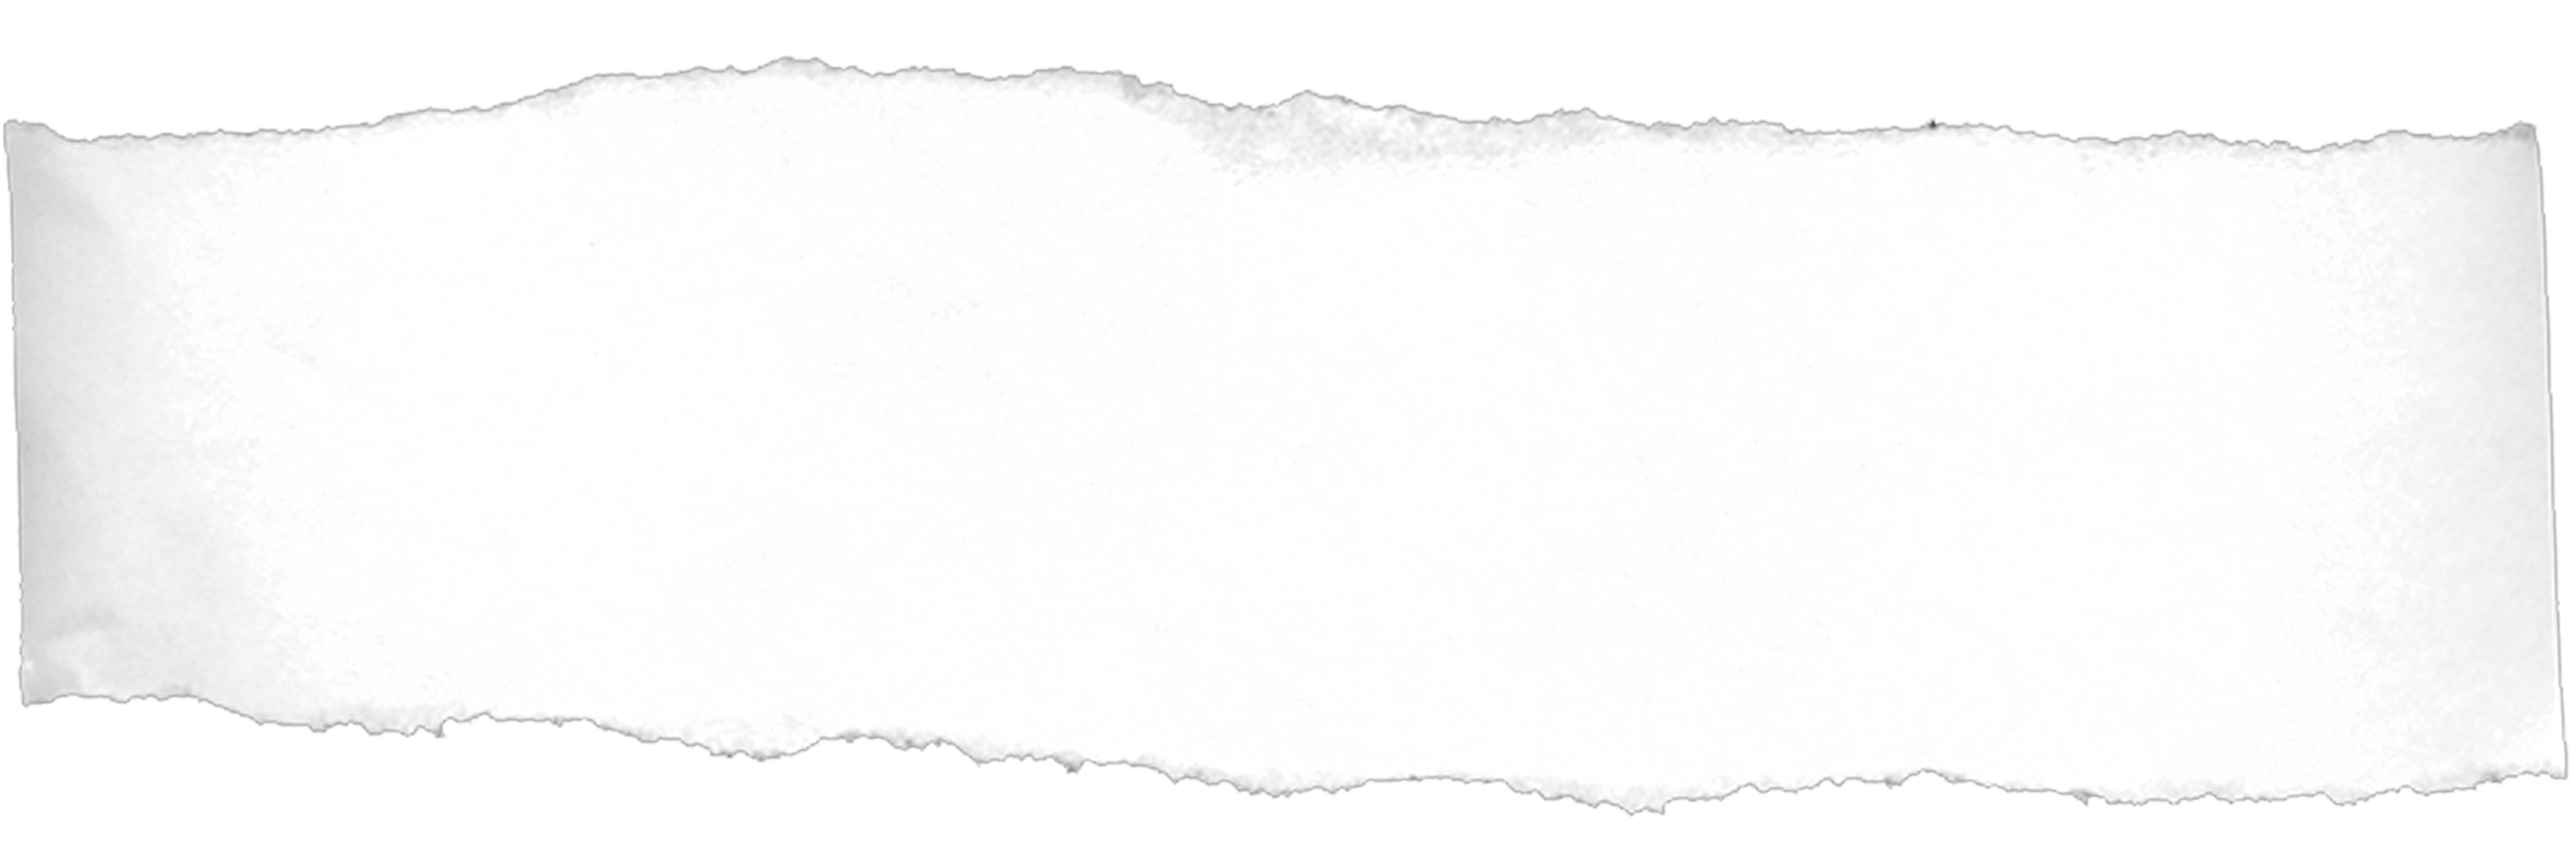 Torn notebook paper png. Ripped page group cliparts